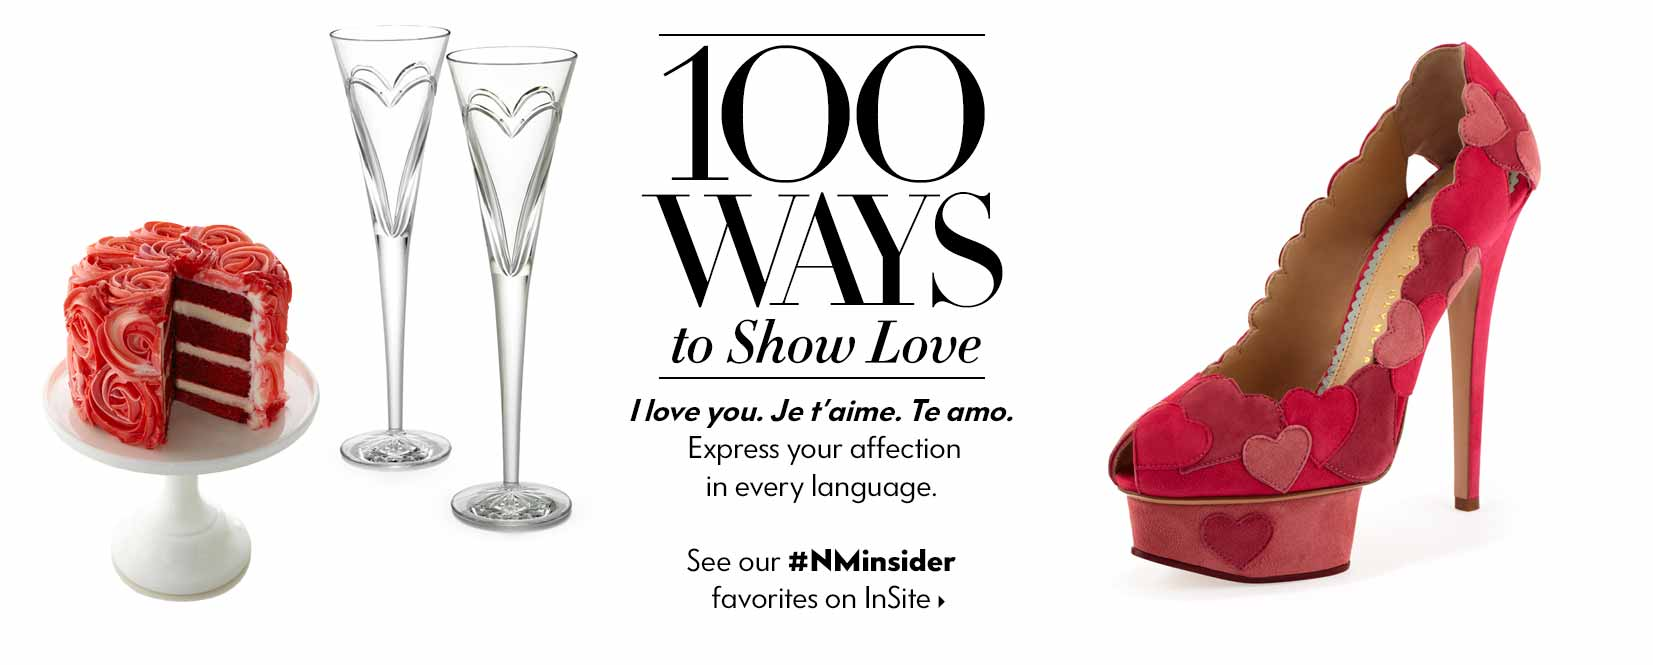 100 Ways to show Love